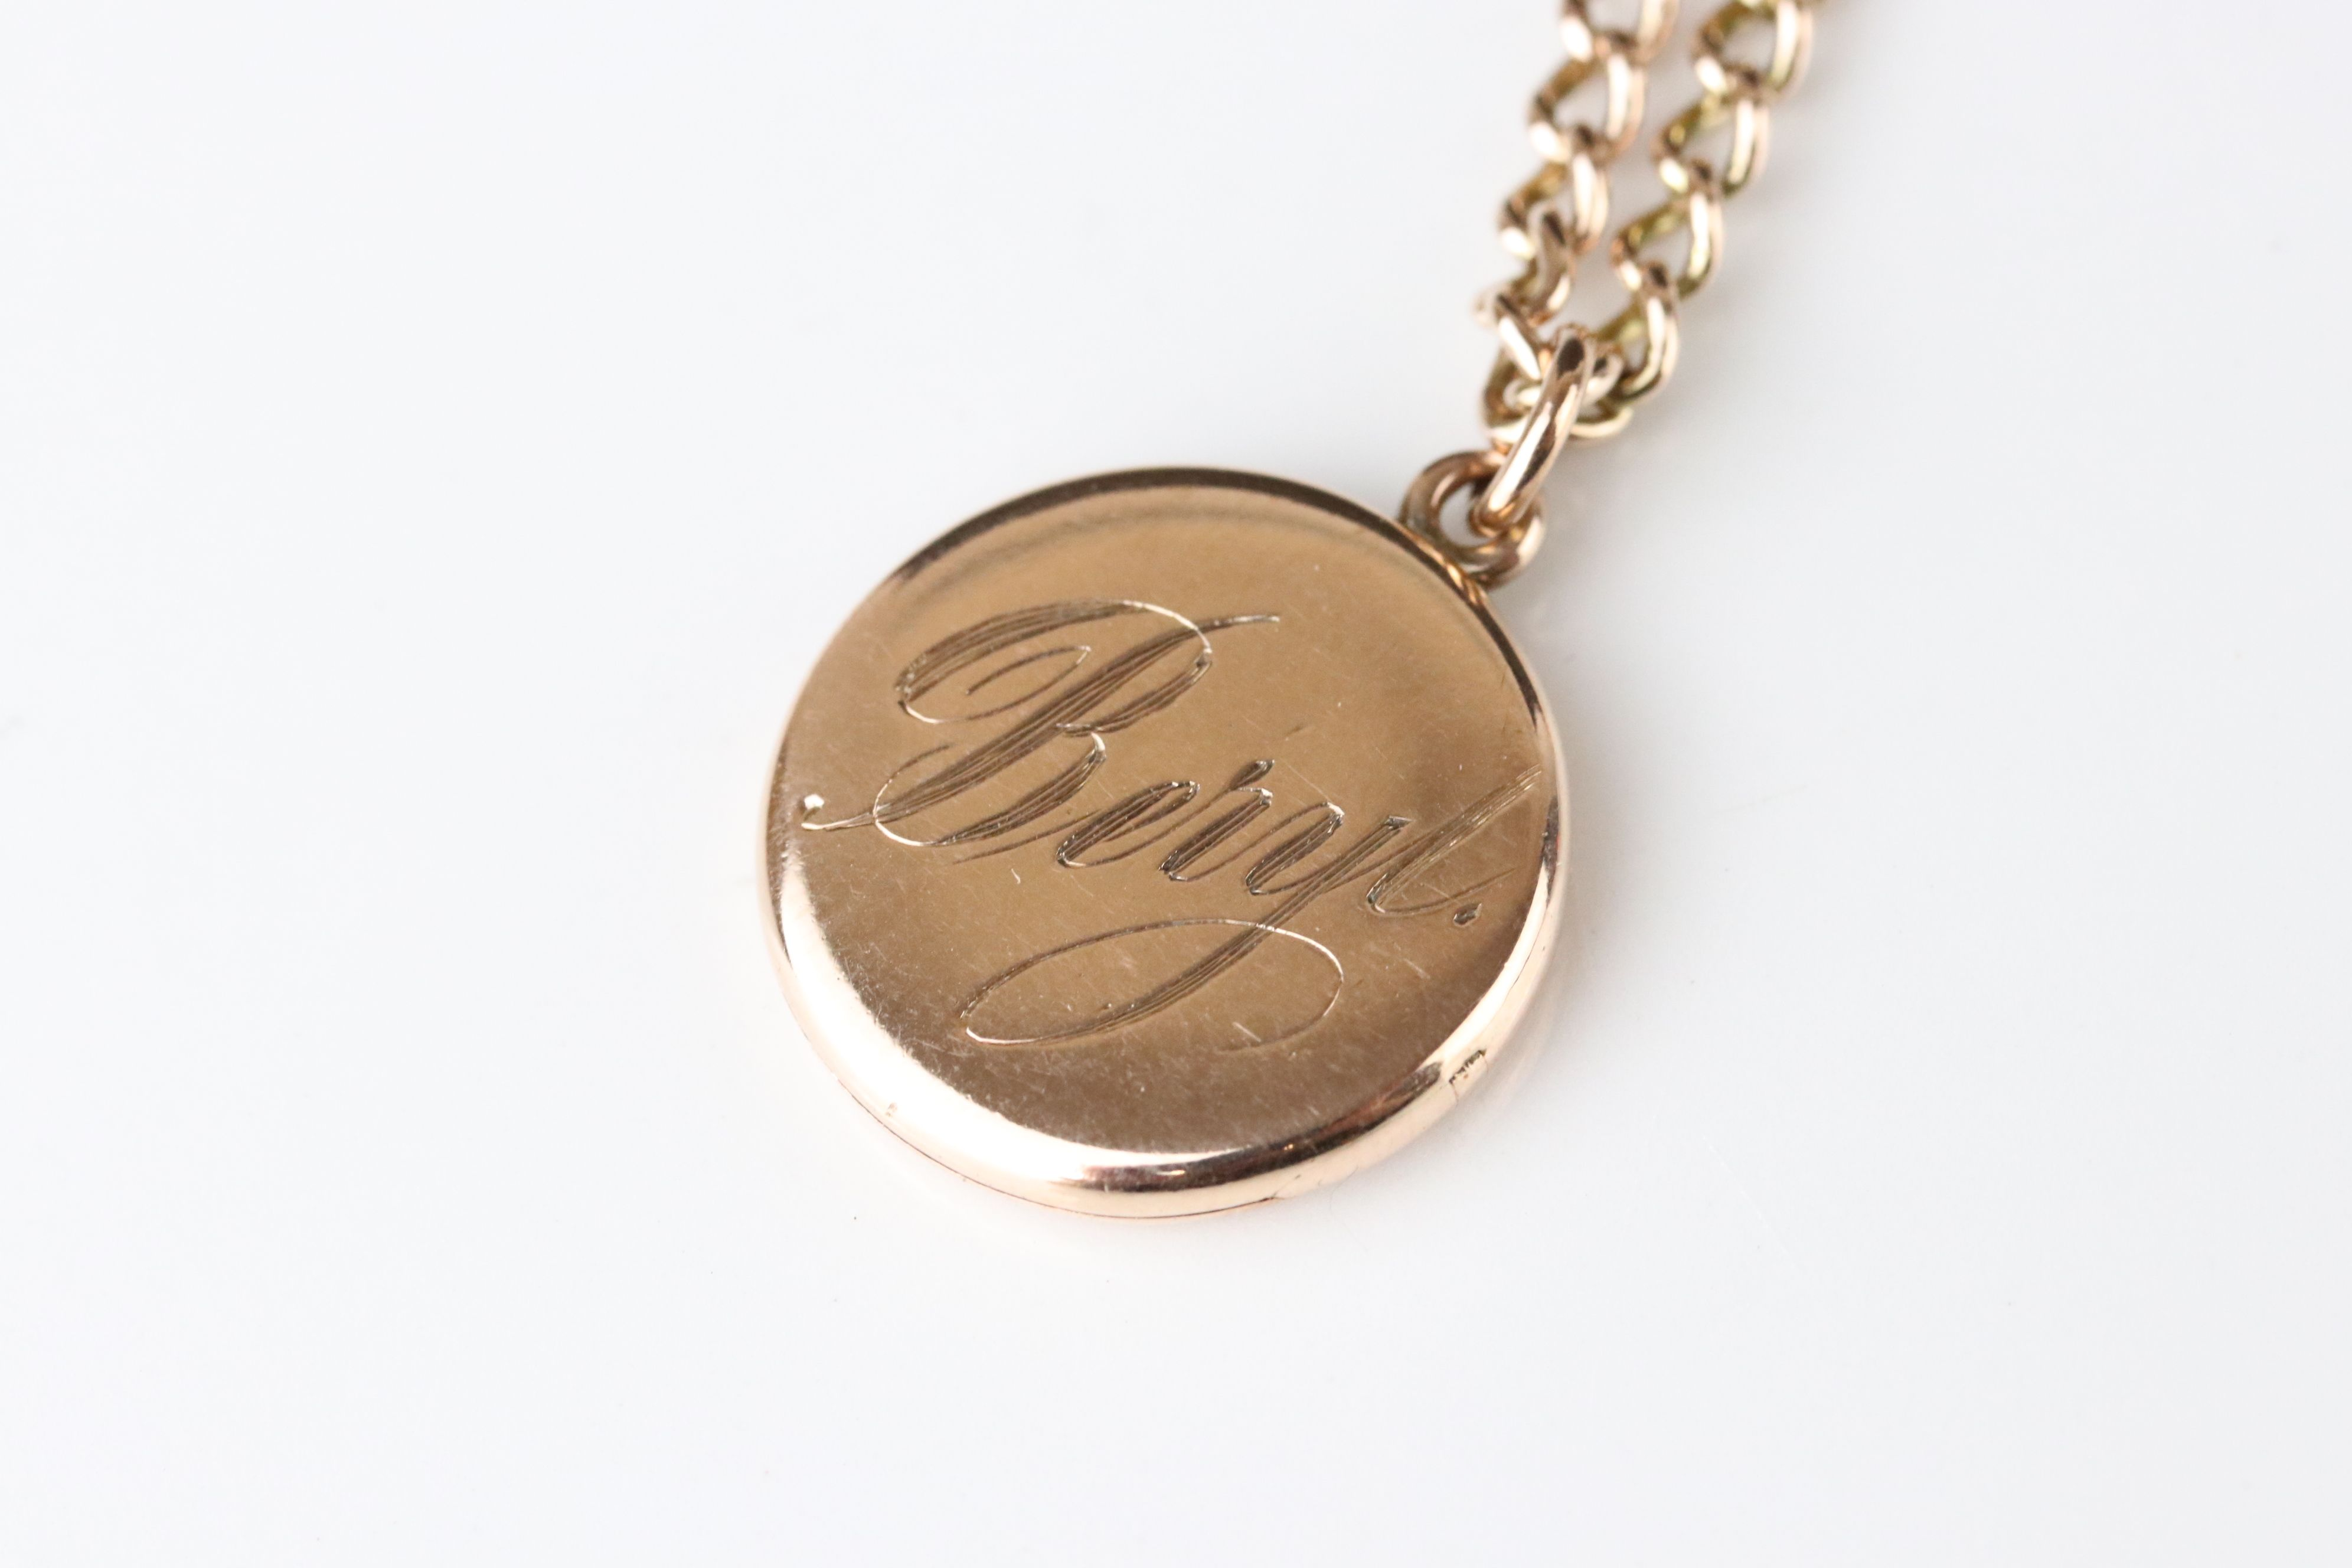 10ct yellow gold locket pendant engraved Beryl, containing hair to glazed compartment, on 9ct rose - Image 2 of 3